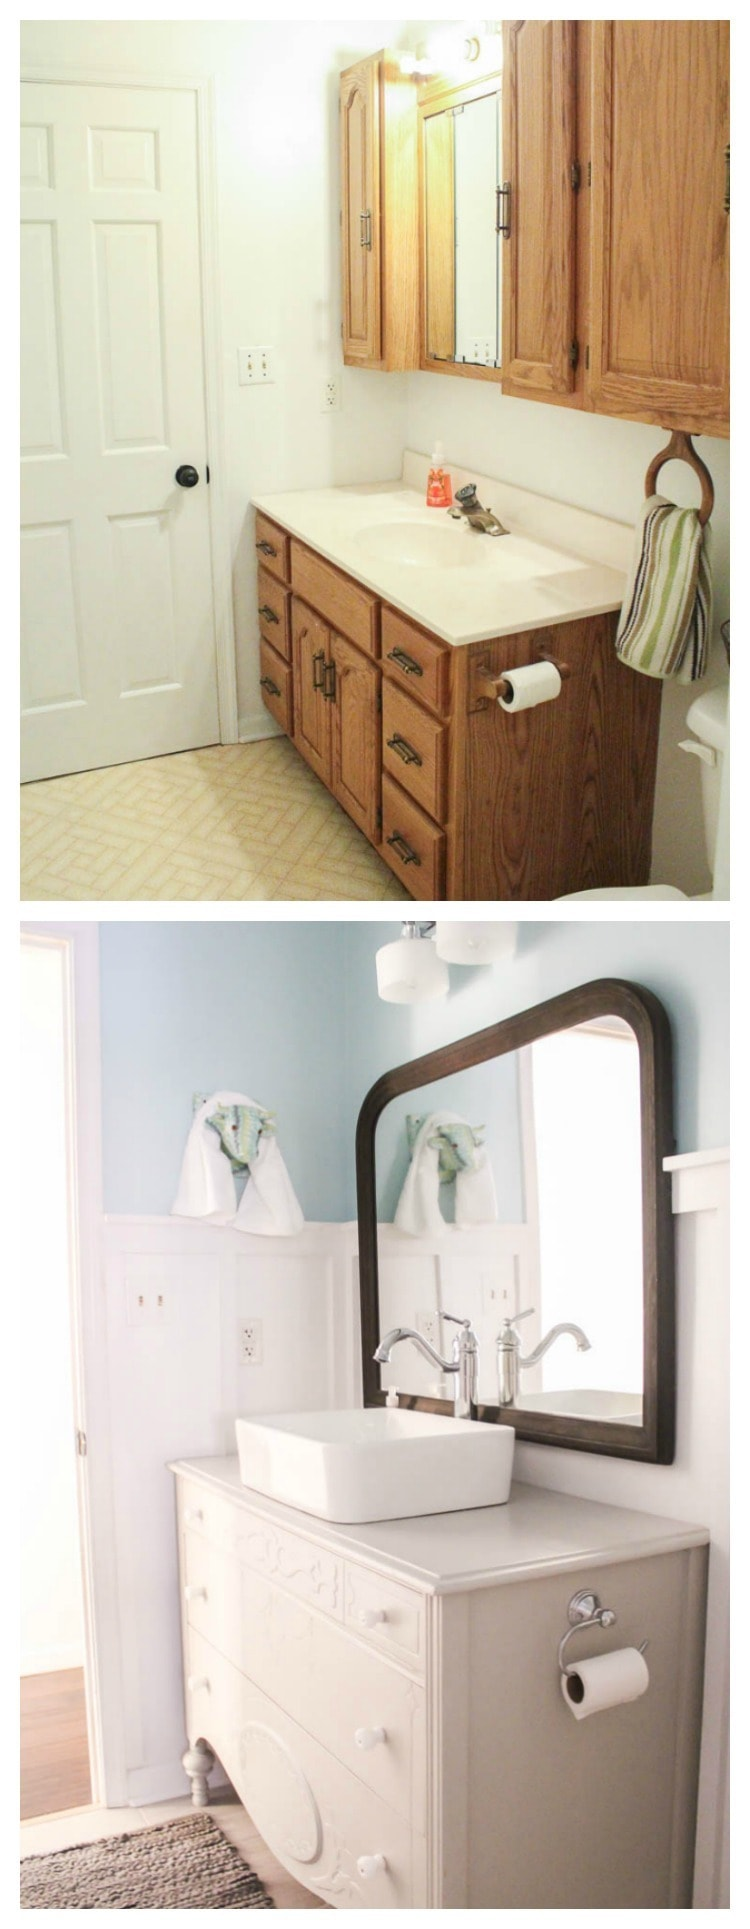 Bathroom Renovation Diy modern farmhouse bathroom: the true final budget and source list